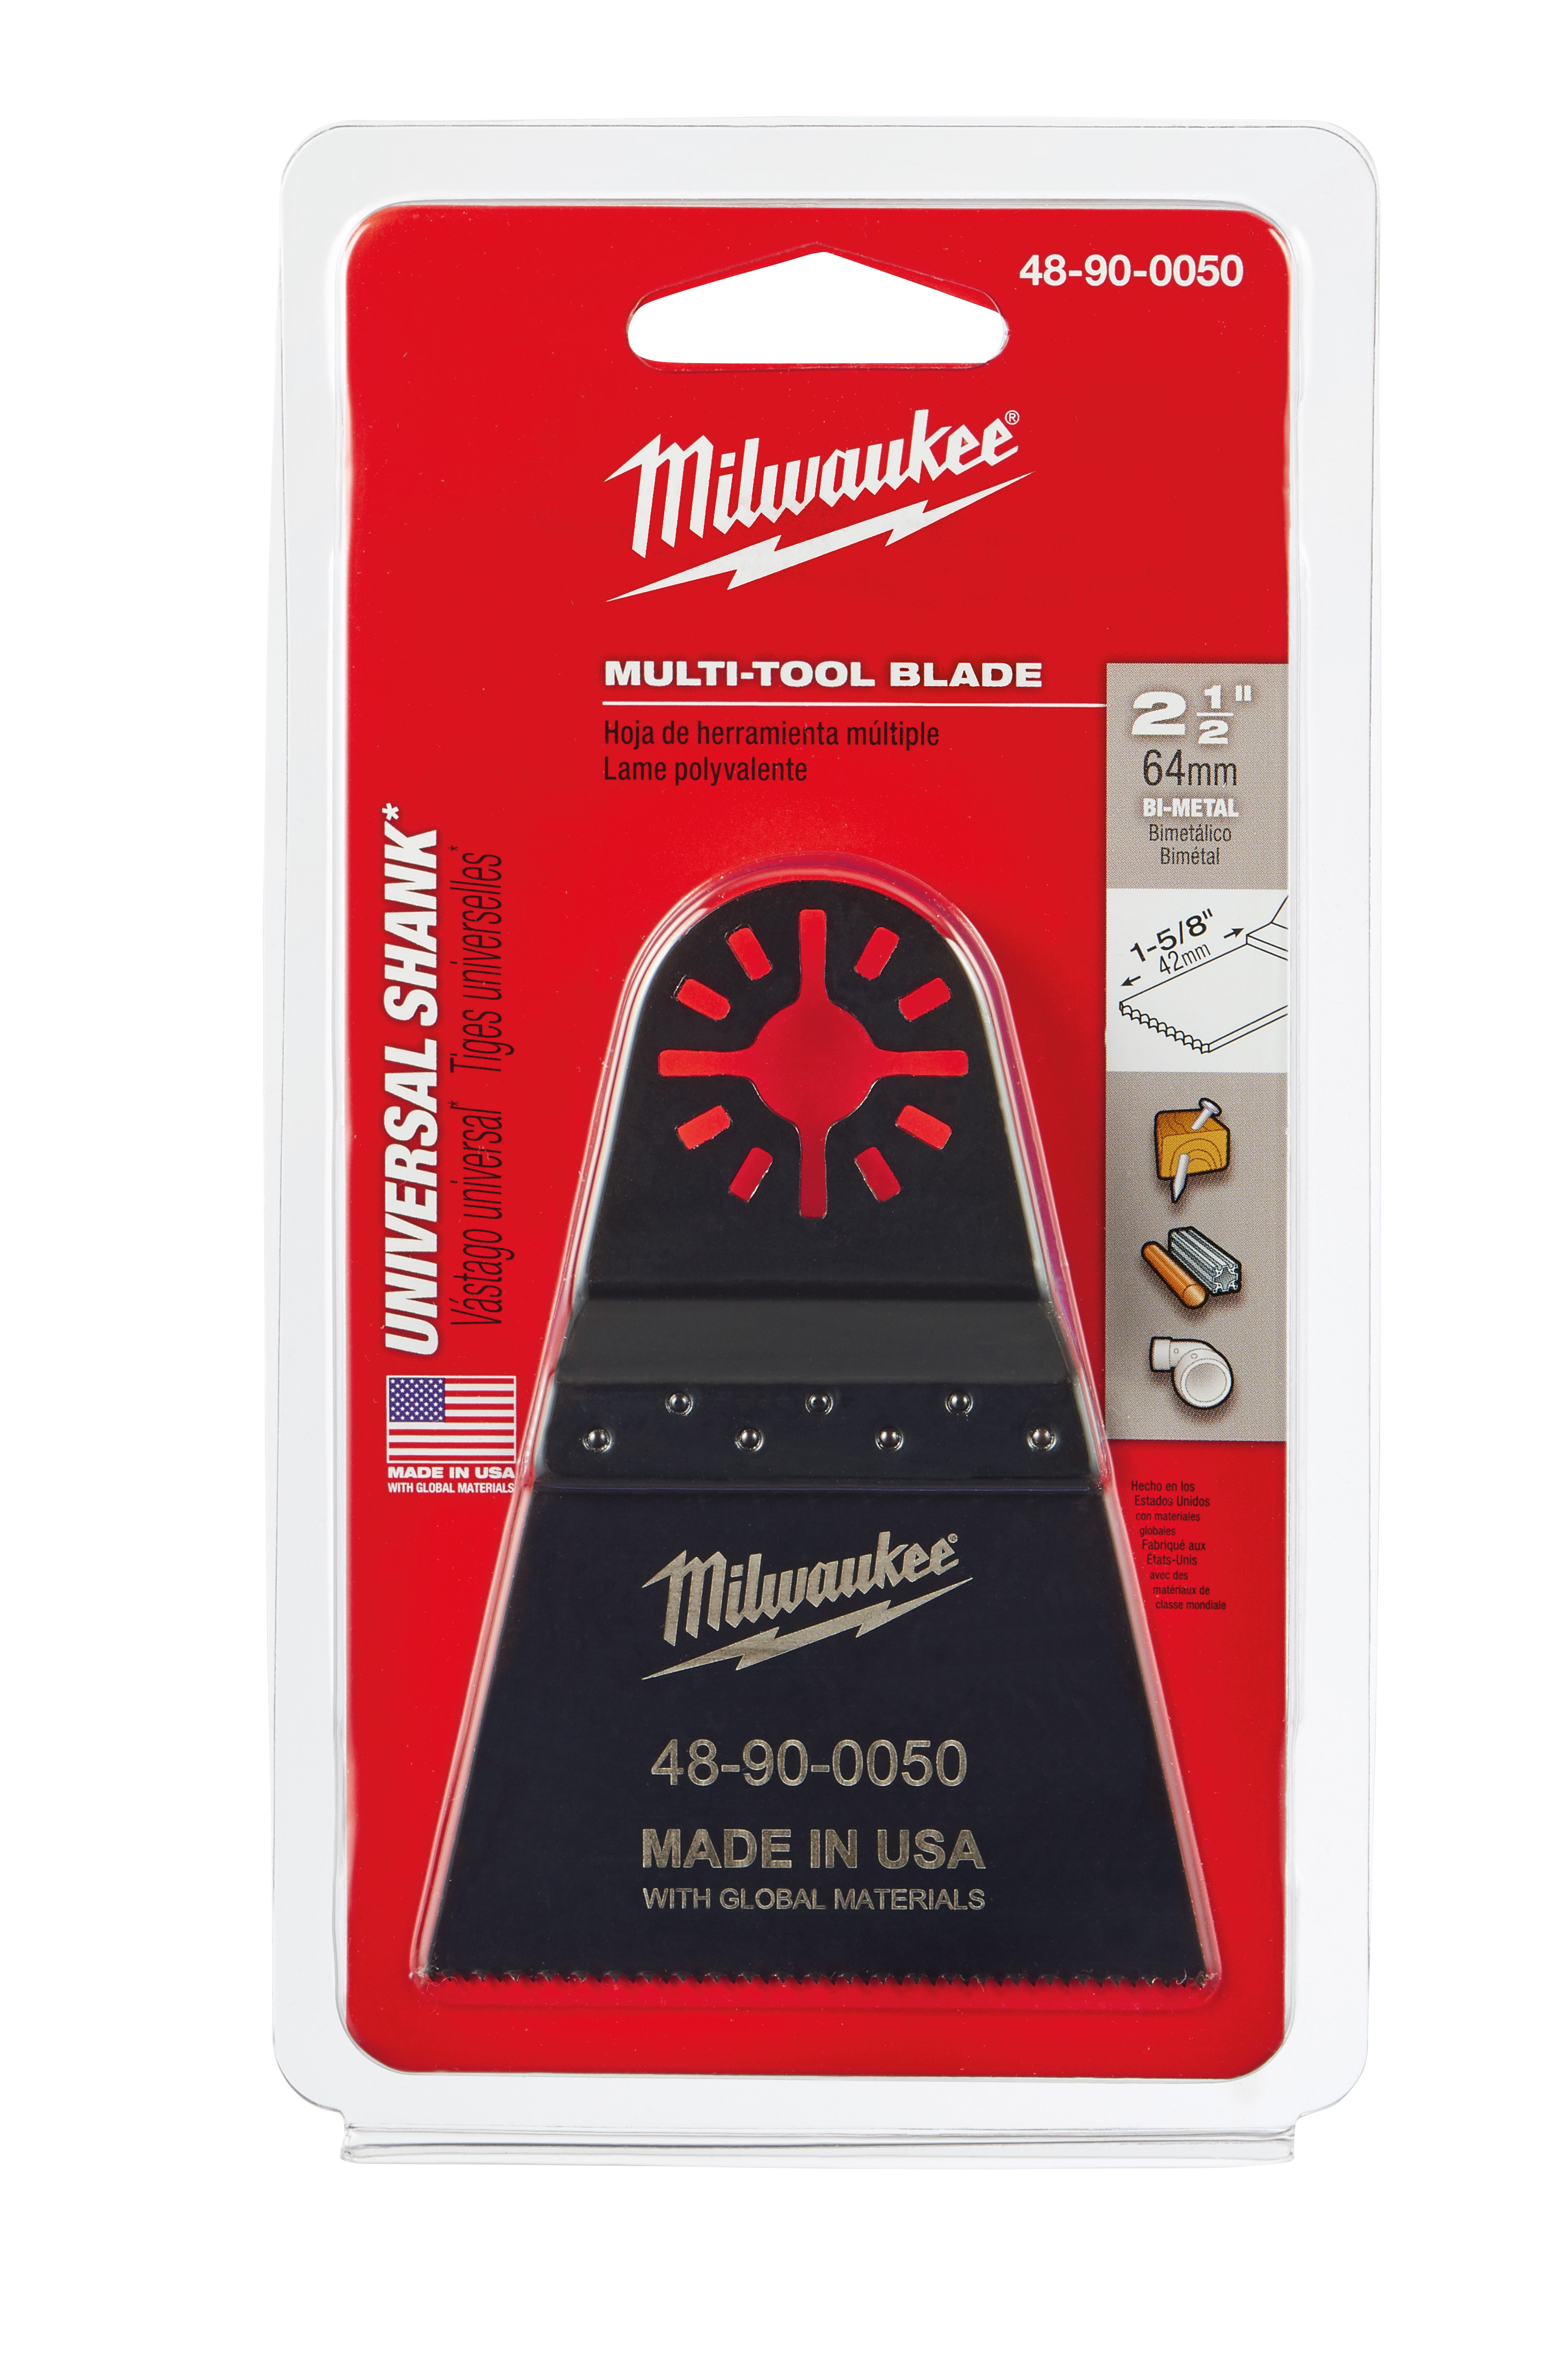 Milwaukee® 42-66-0900 Replacement Drill Chuck, For Use With 2601 Compact Drill Driver, Metal